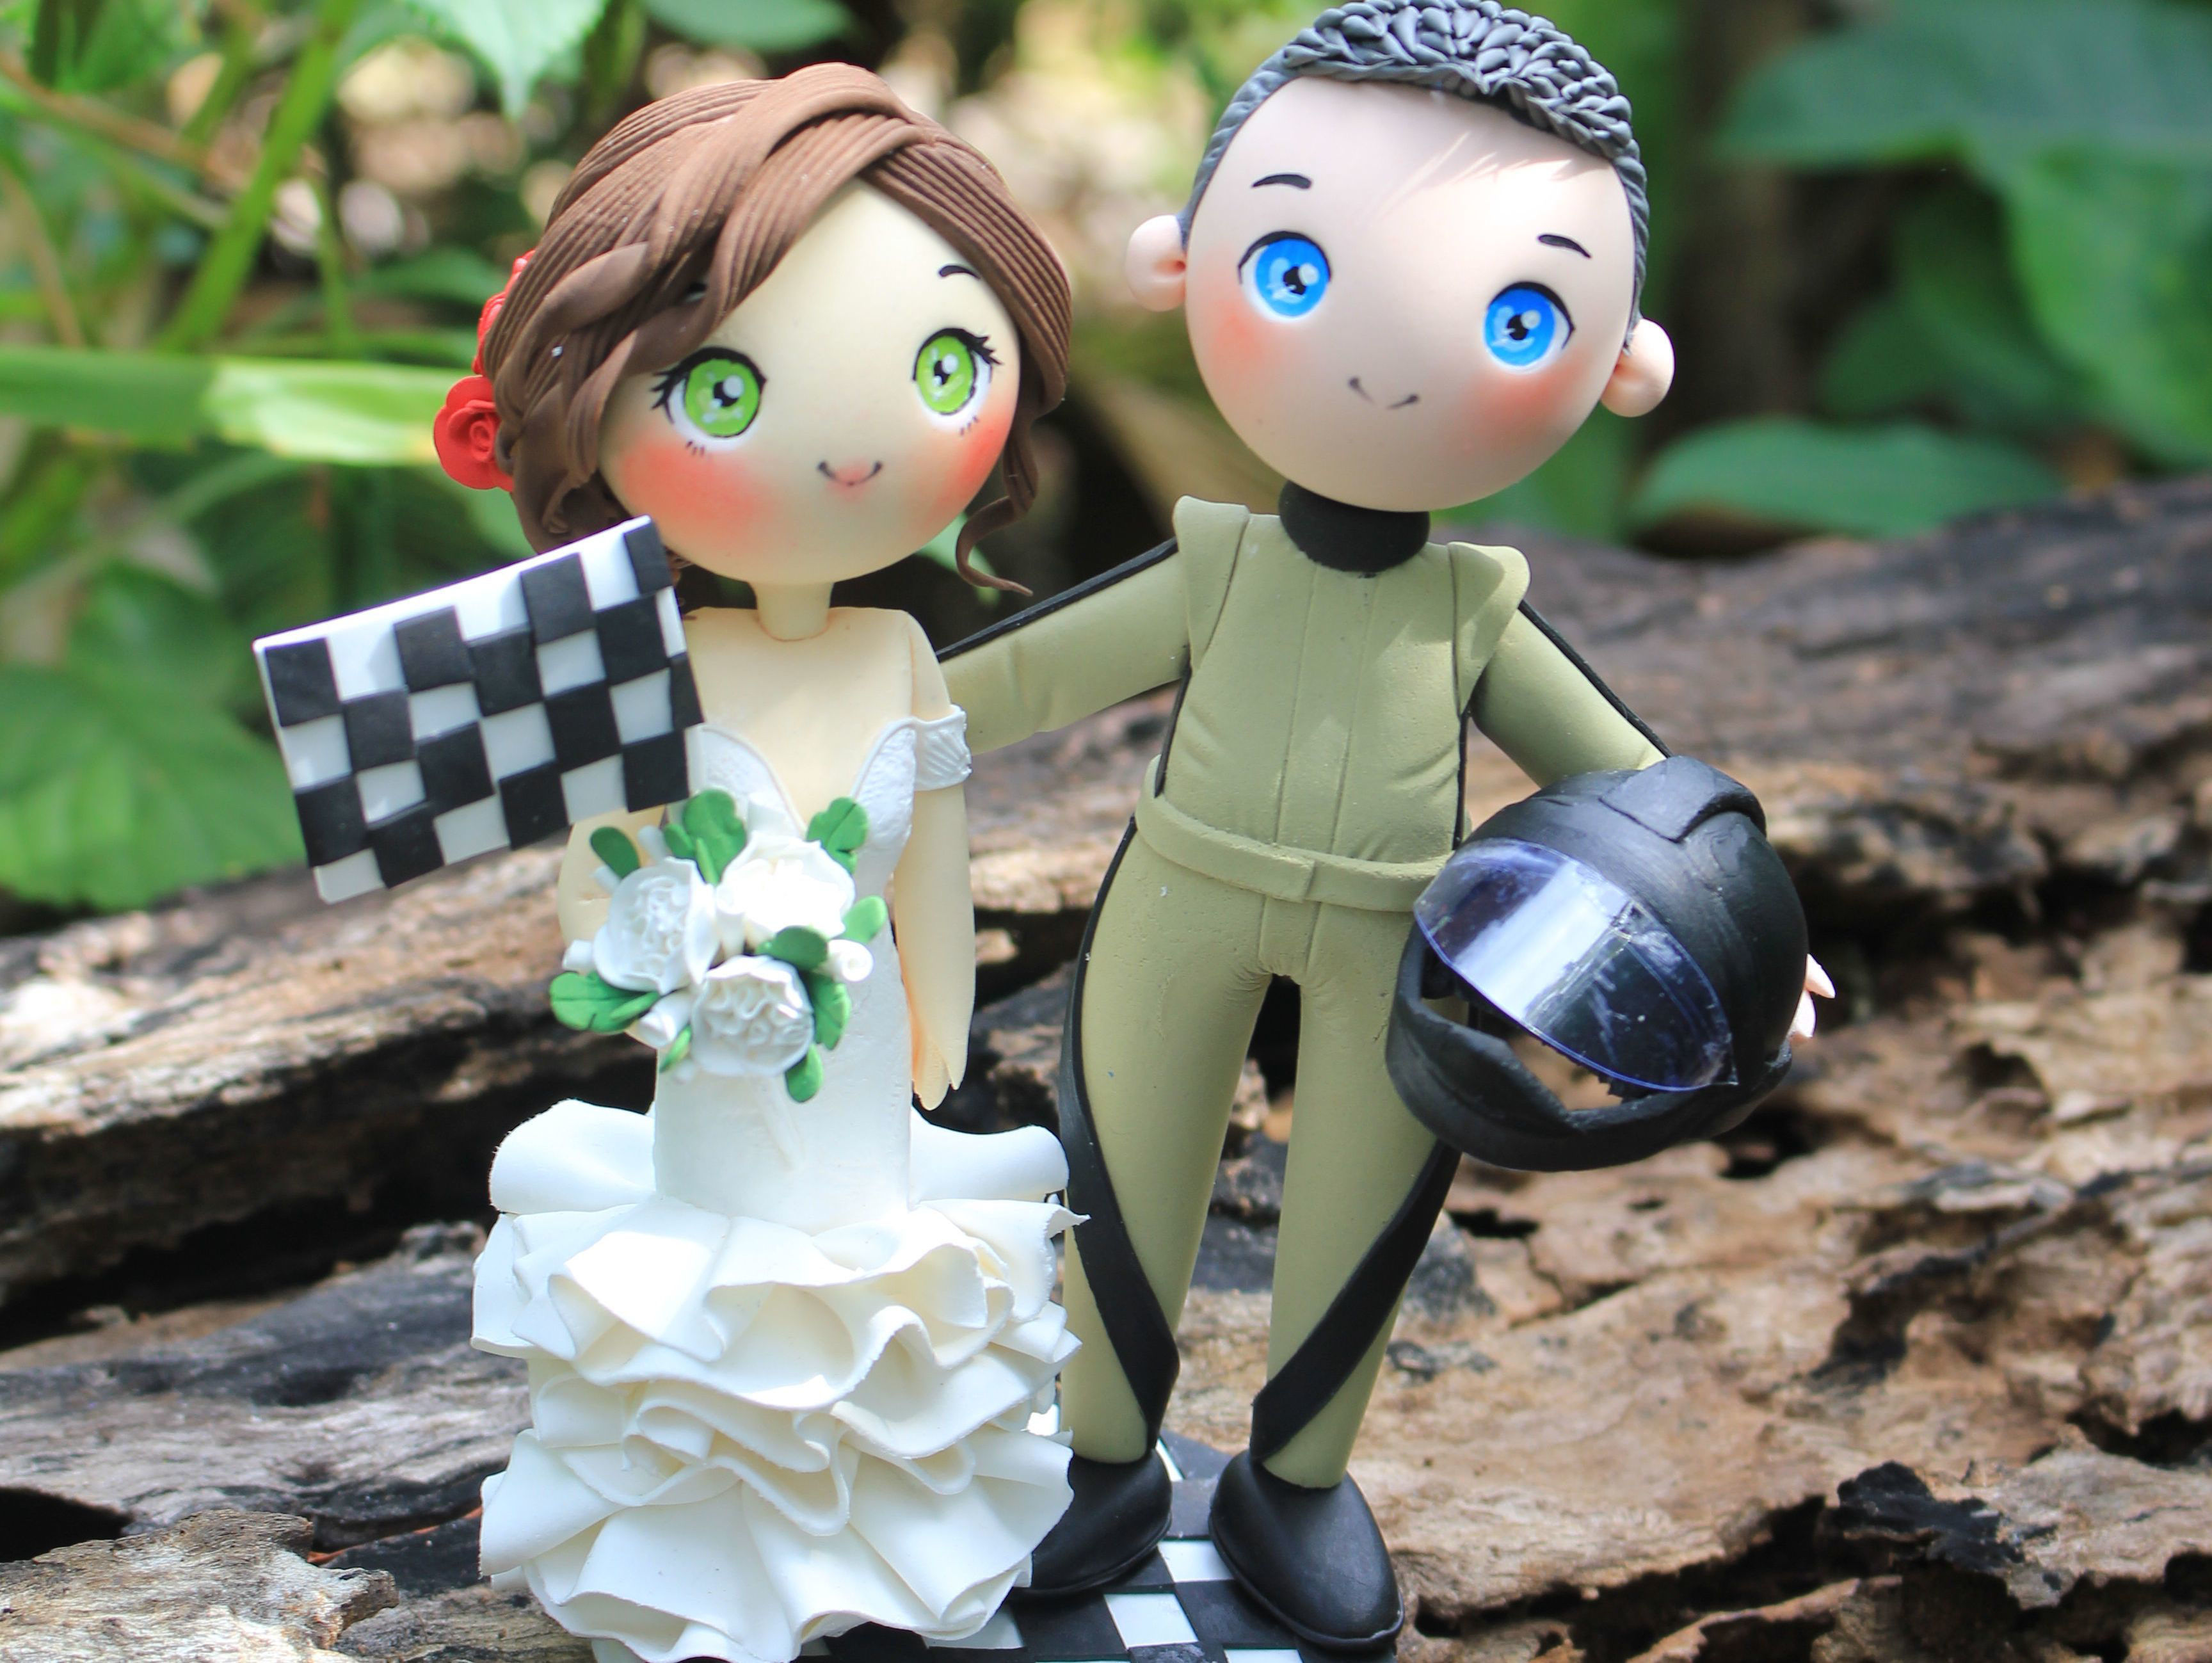 Picture of F1 Racer Wedding Cake Topper